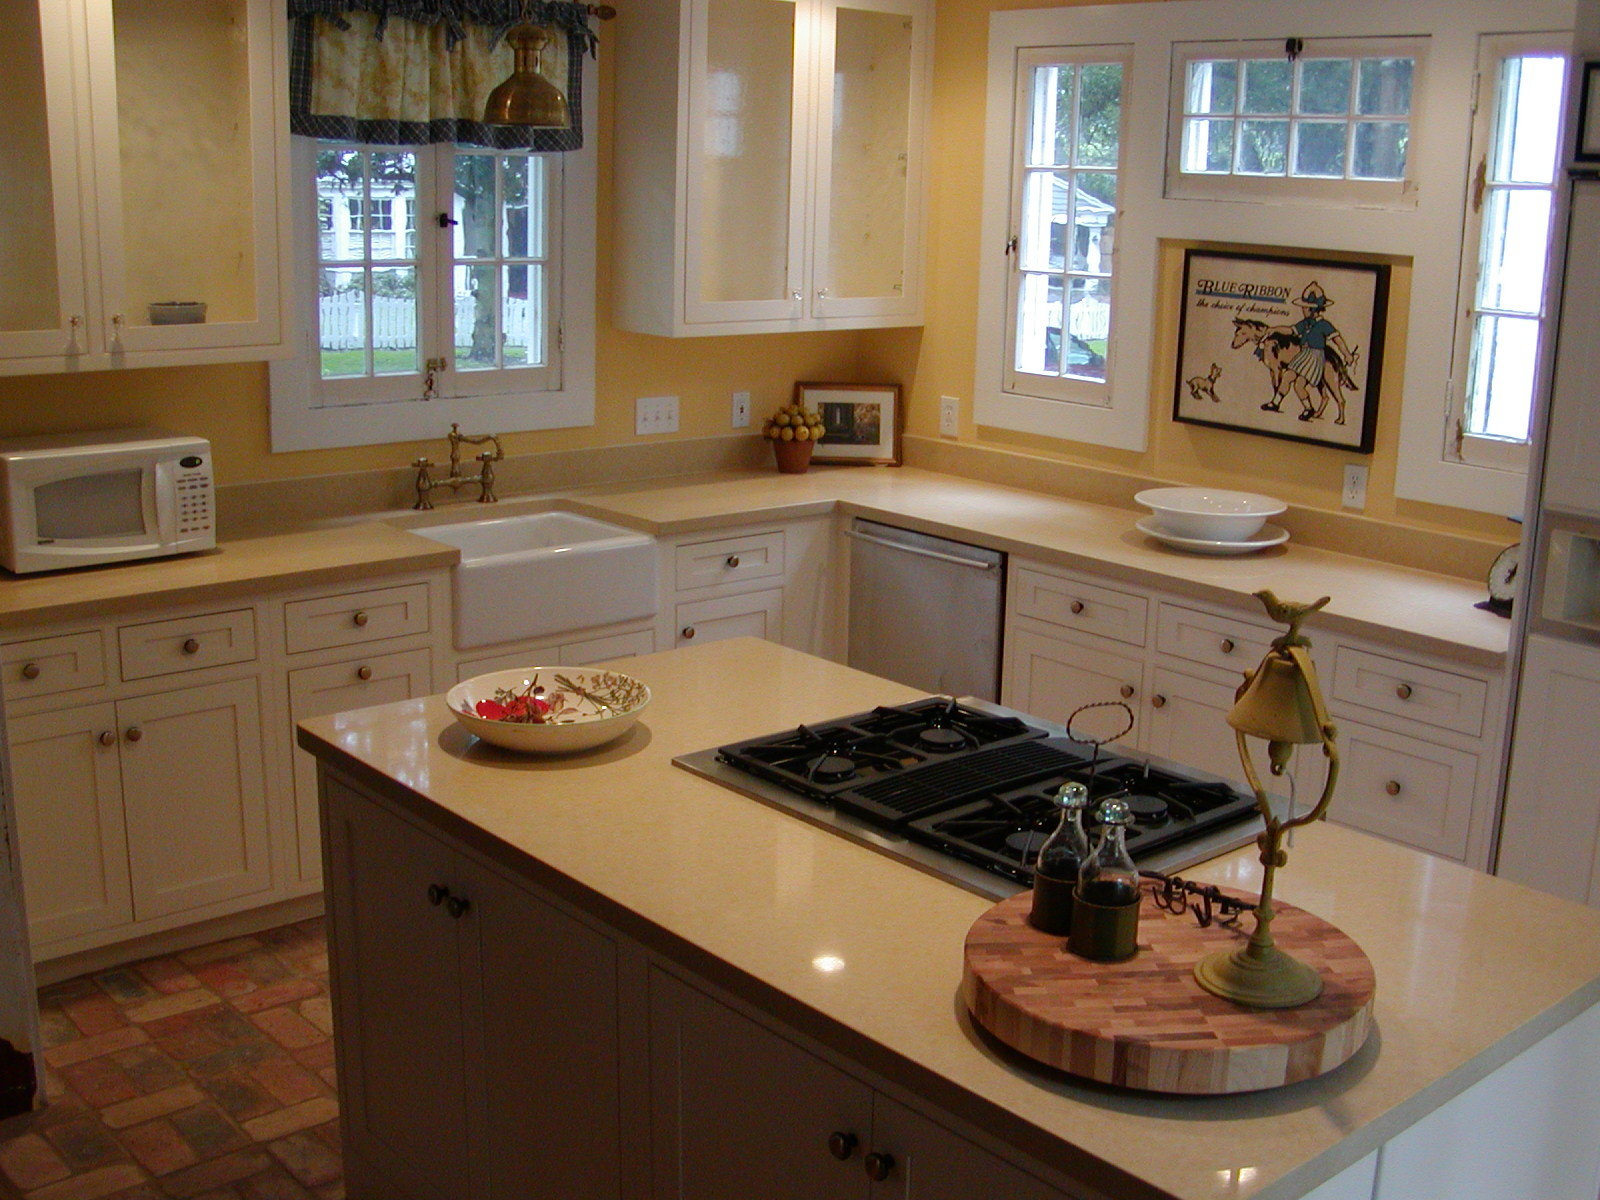 Quartz countertop colors for white cabinets this is it What is the whitest quartz countertop